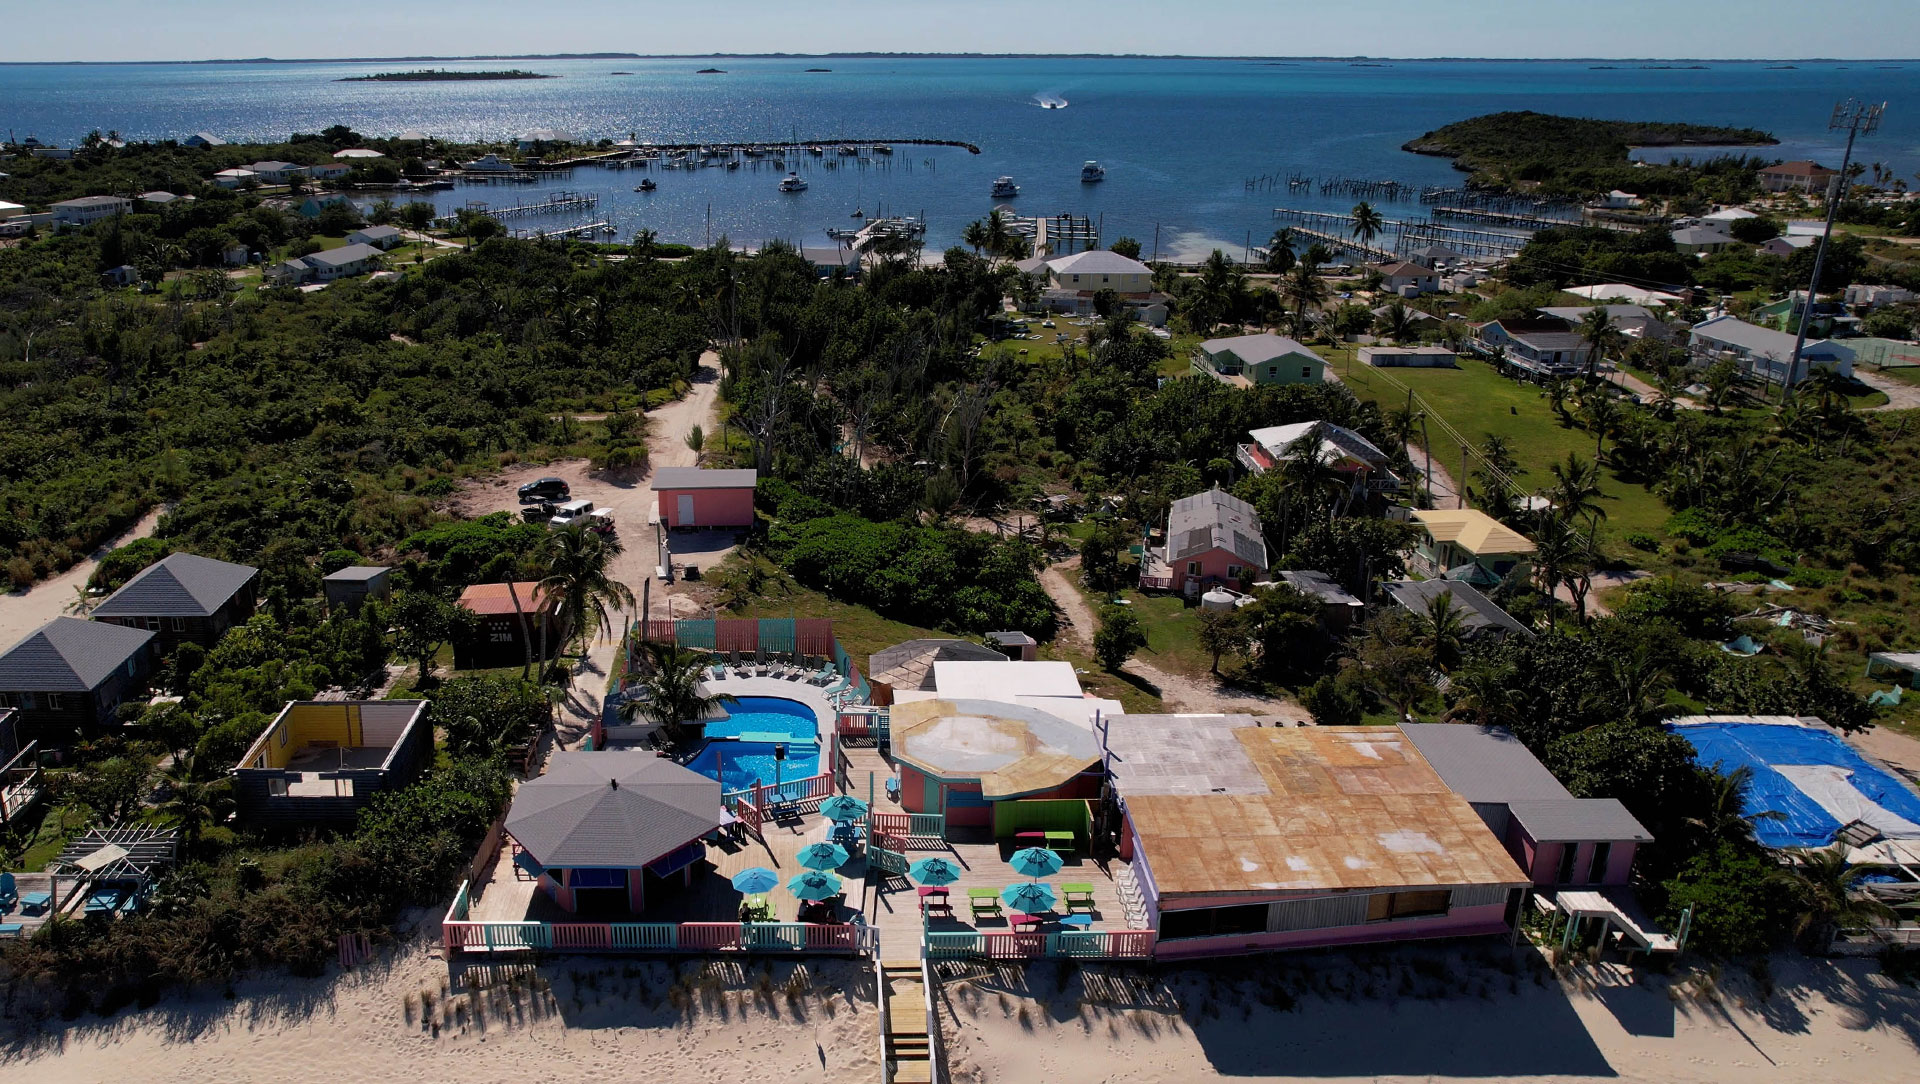 Nipper's Beach bar on Guana Cay - View from upper deck